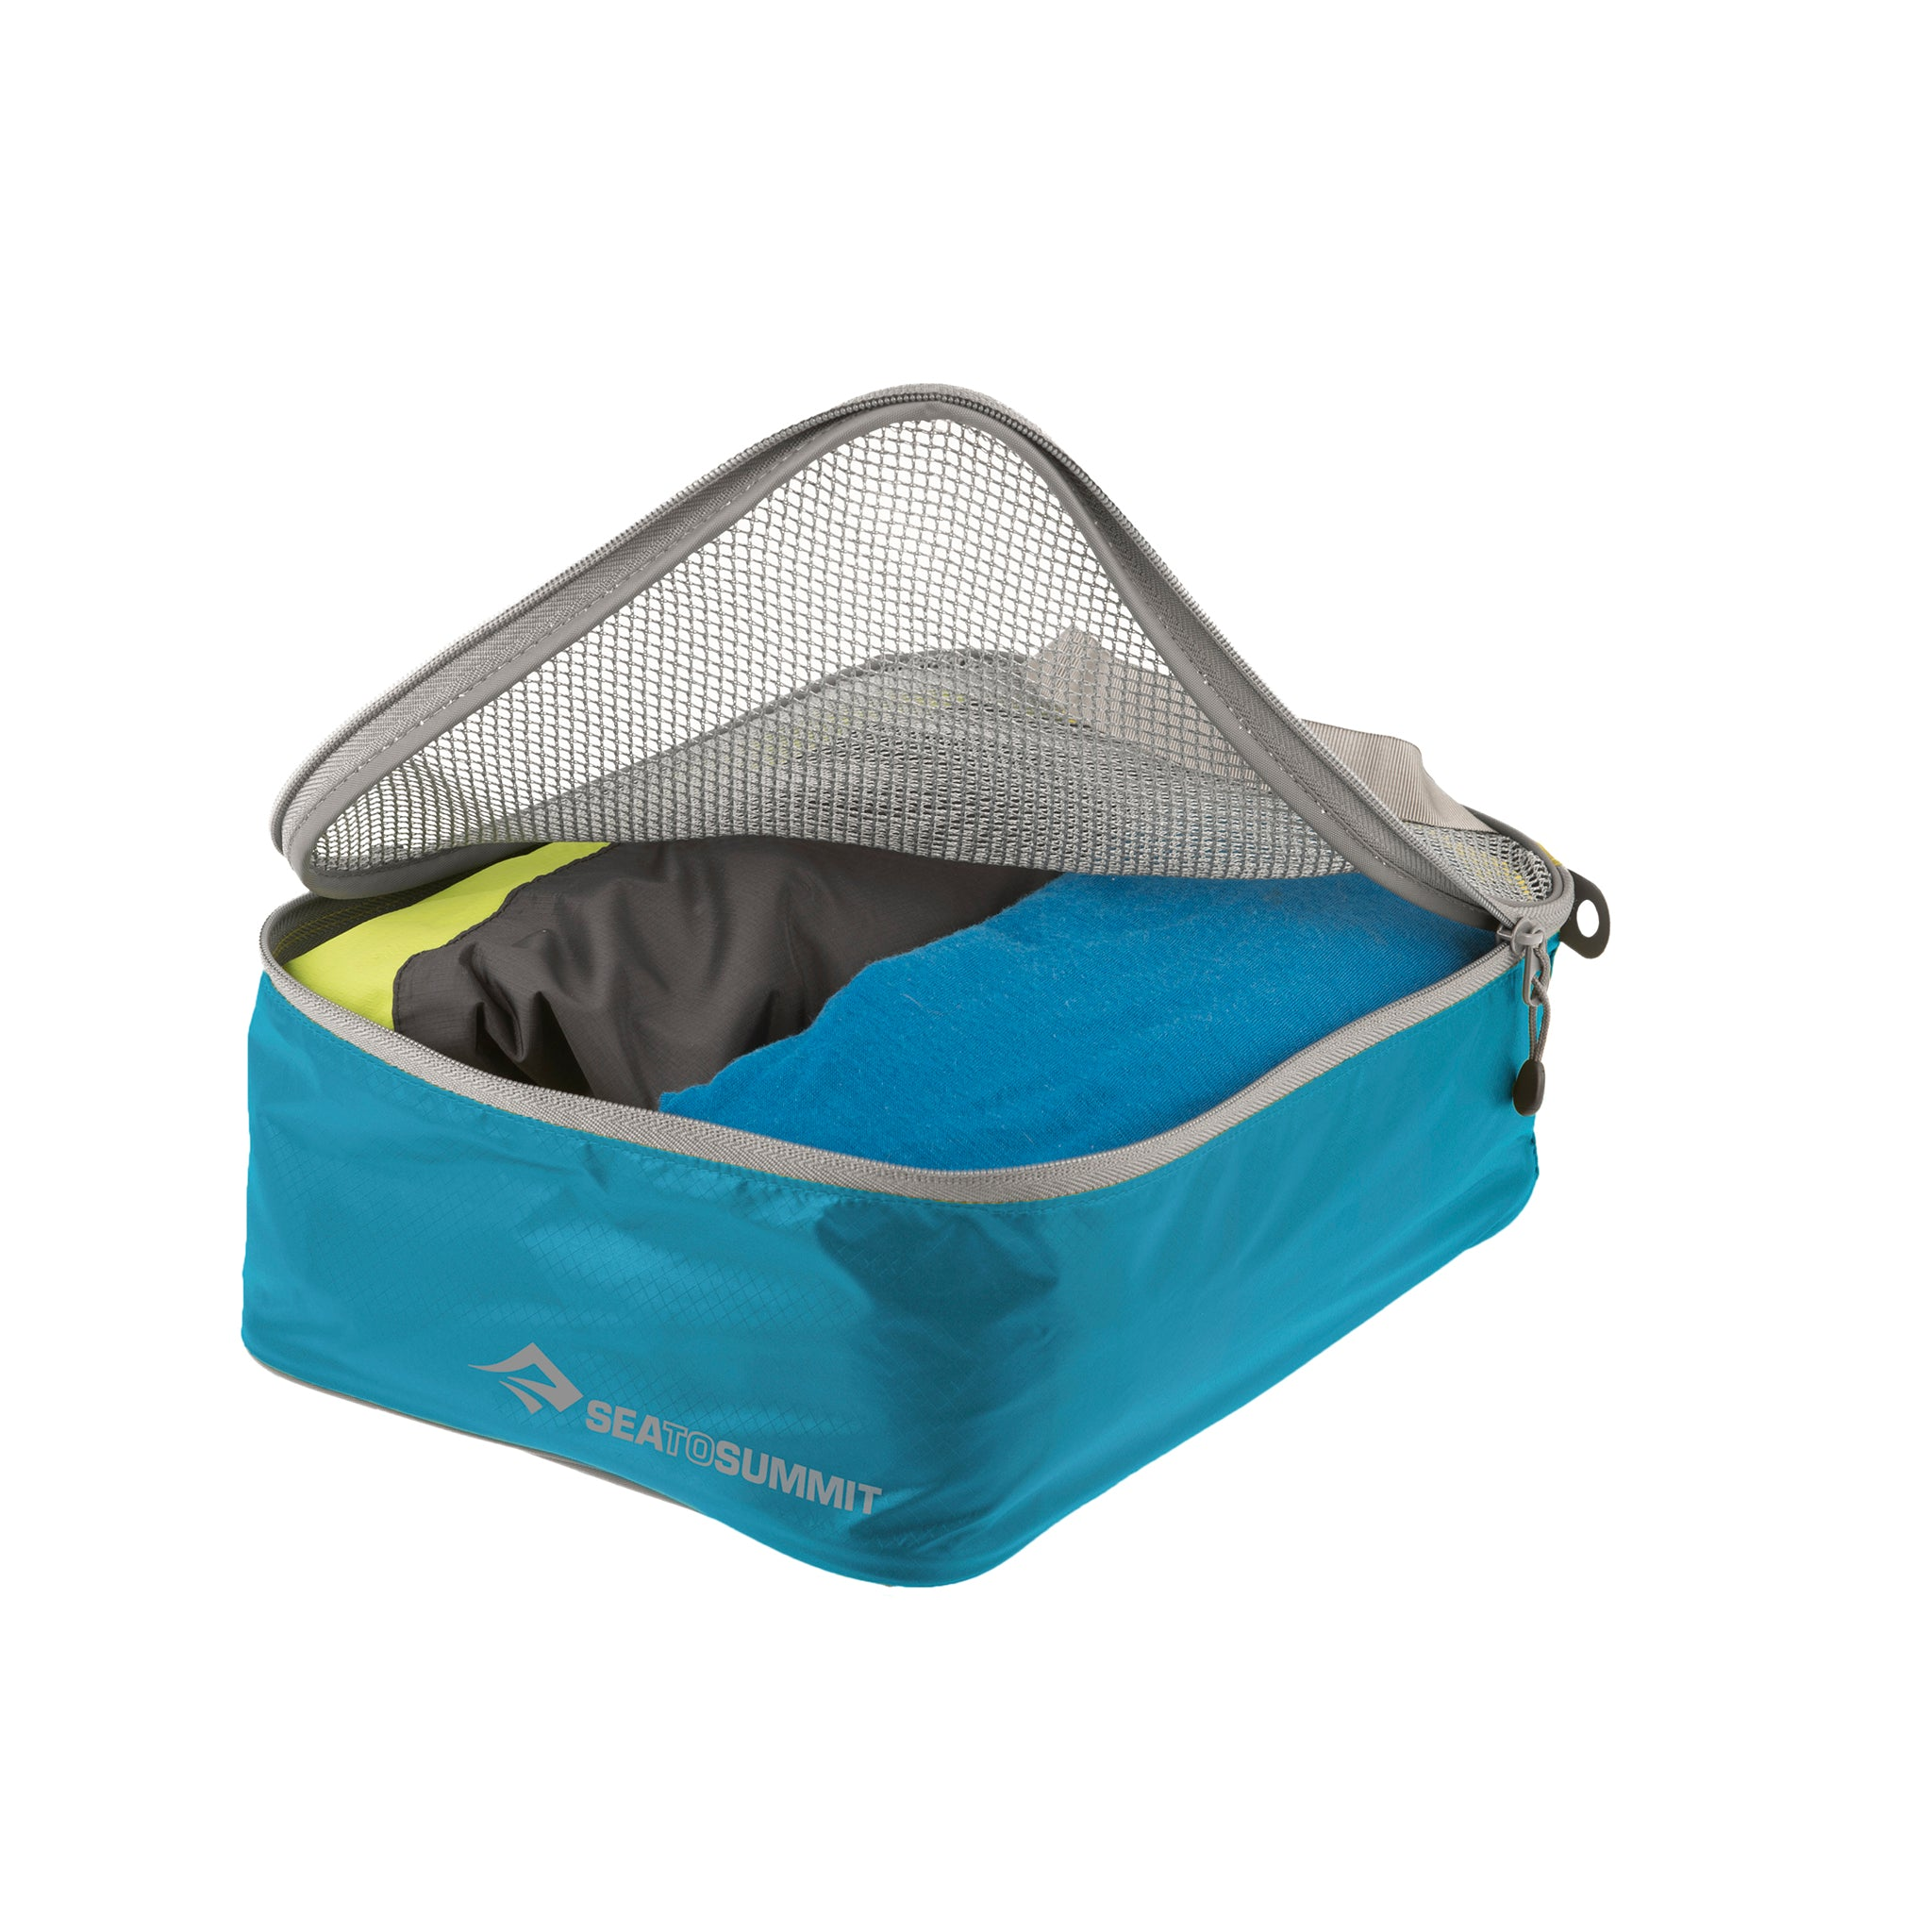 Travelling Light _ Travel Packing Garment Mesh Bag _ blue